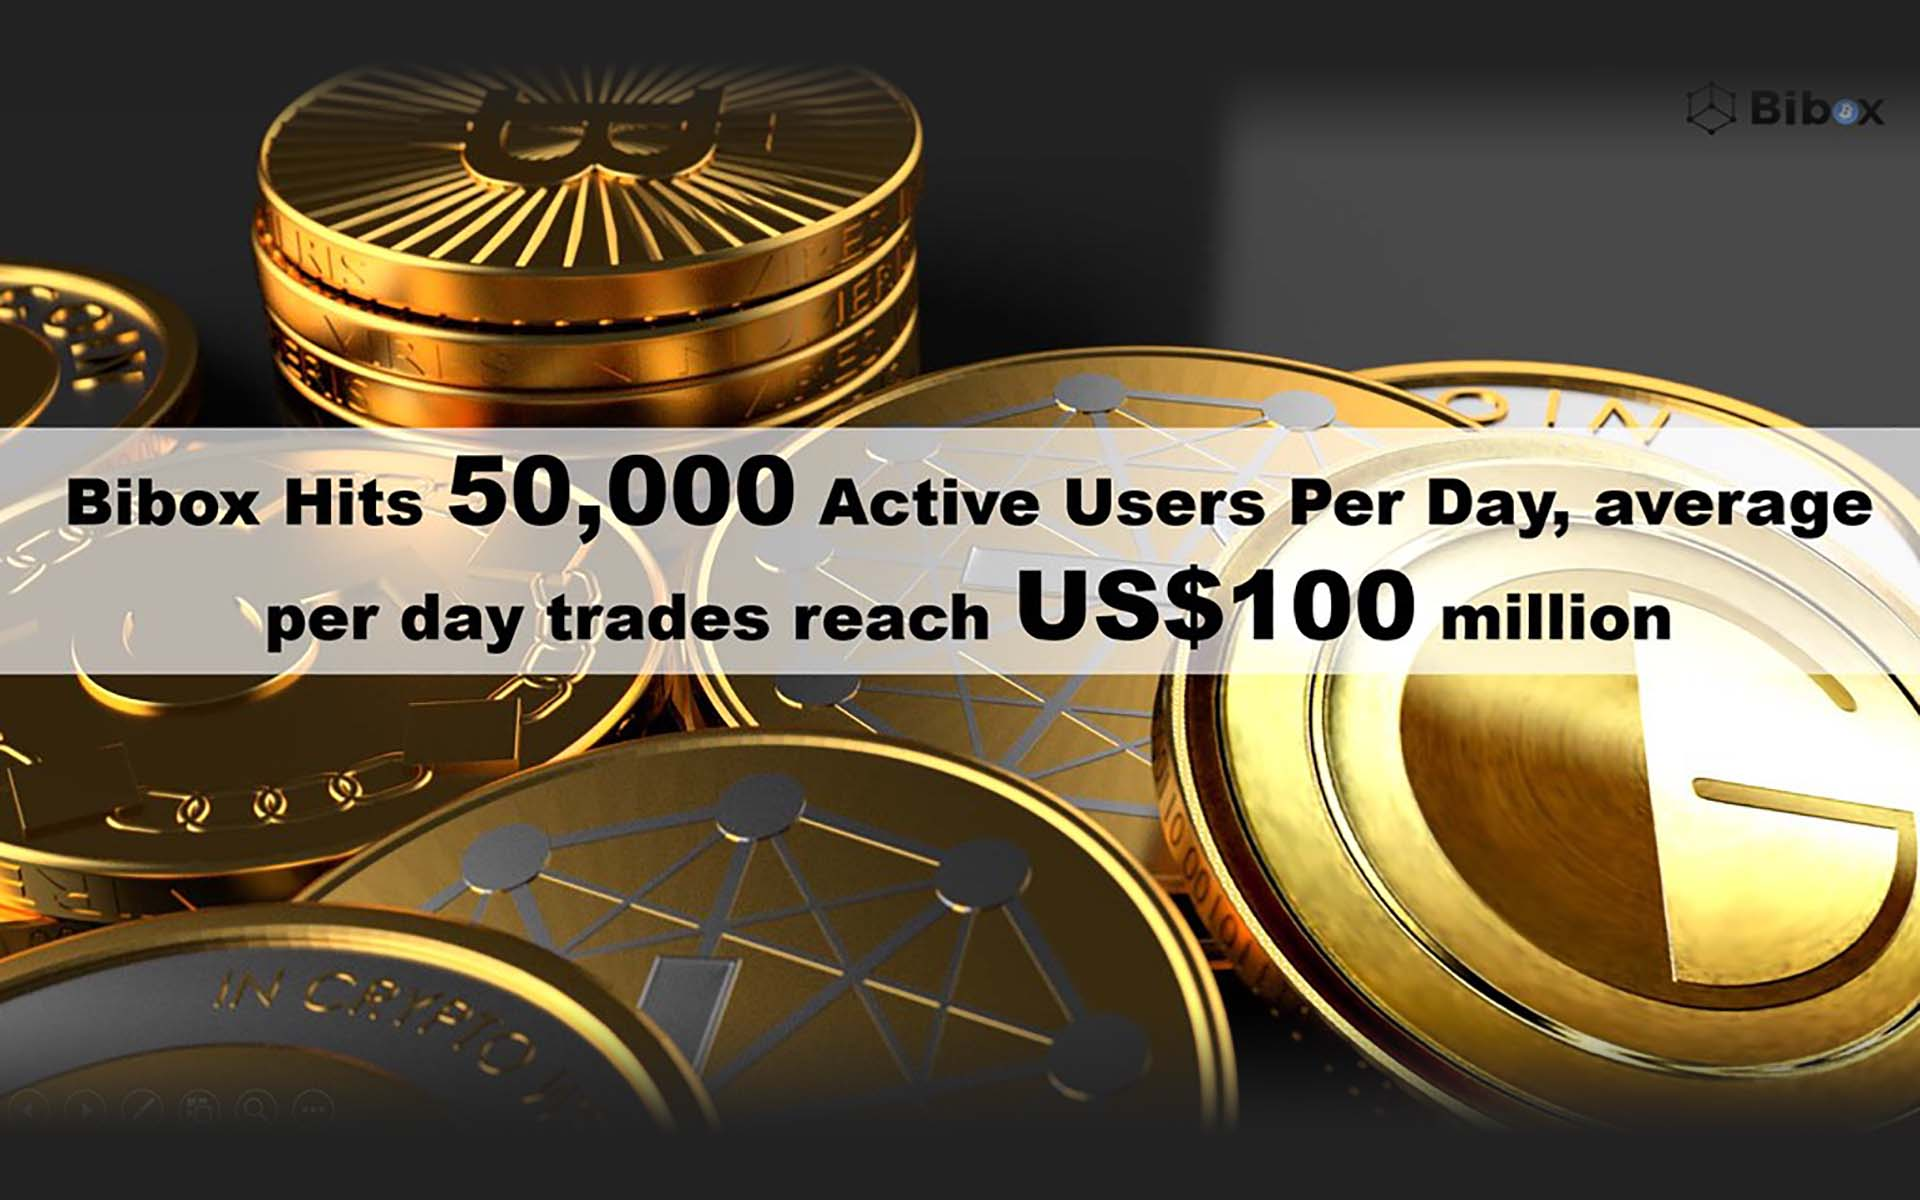 AI-based Bibox Digital Asset Exchange Platform Hits 50,000 Active Users Per Day in Five Months